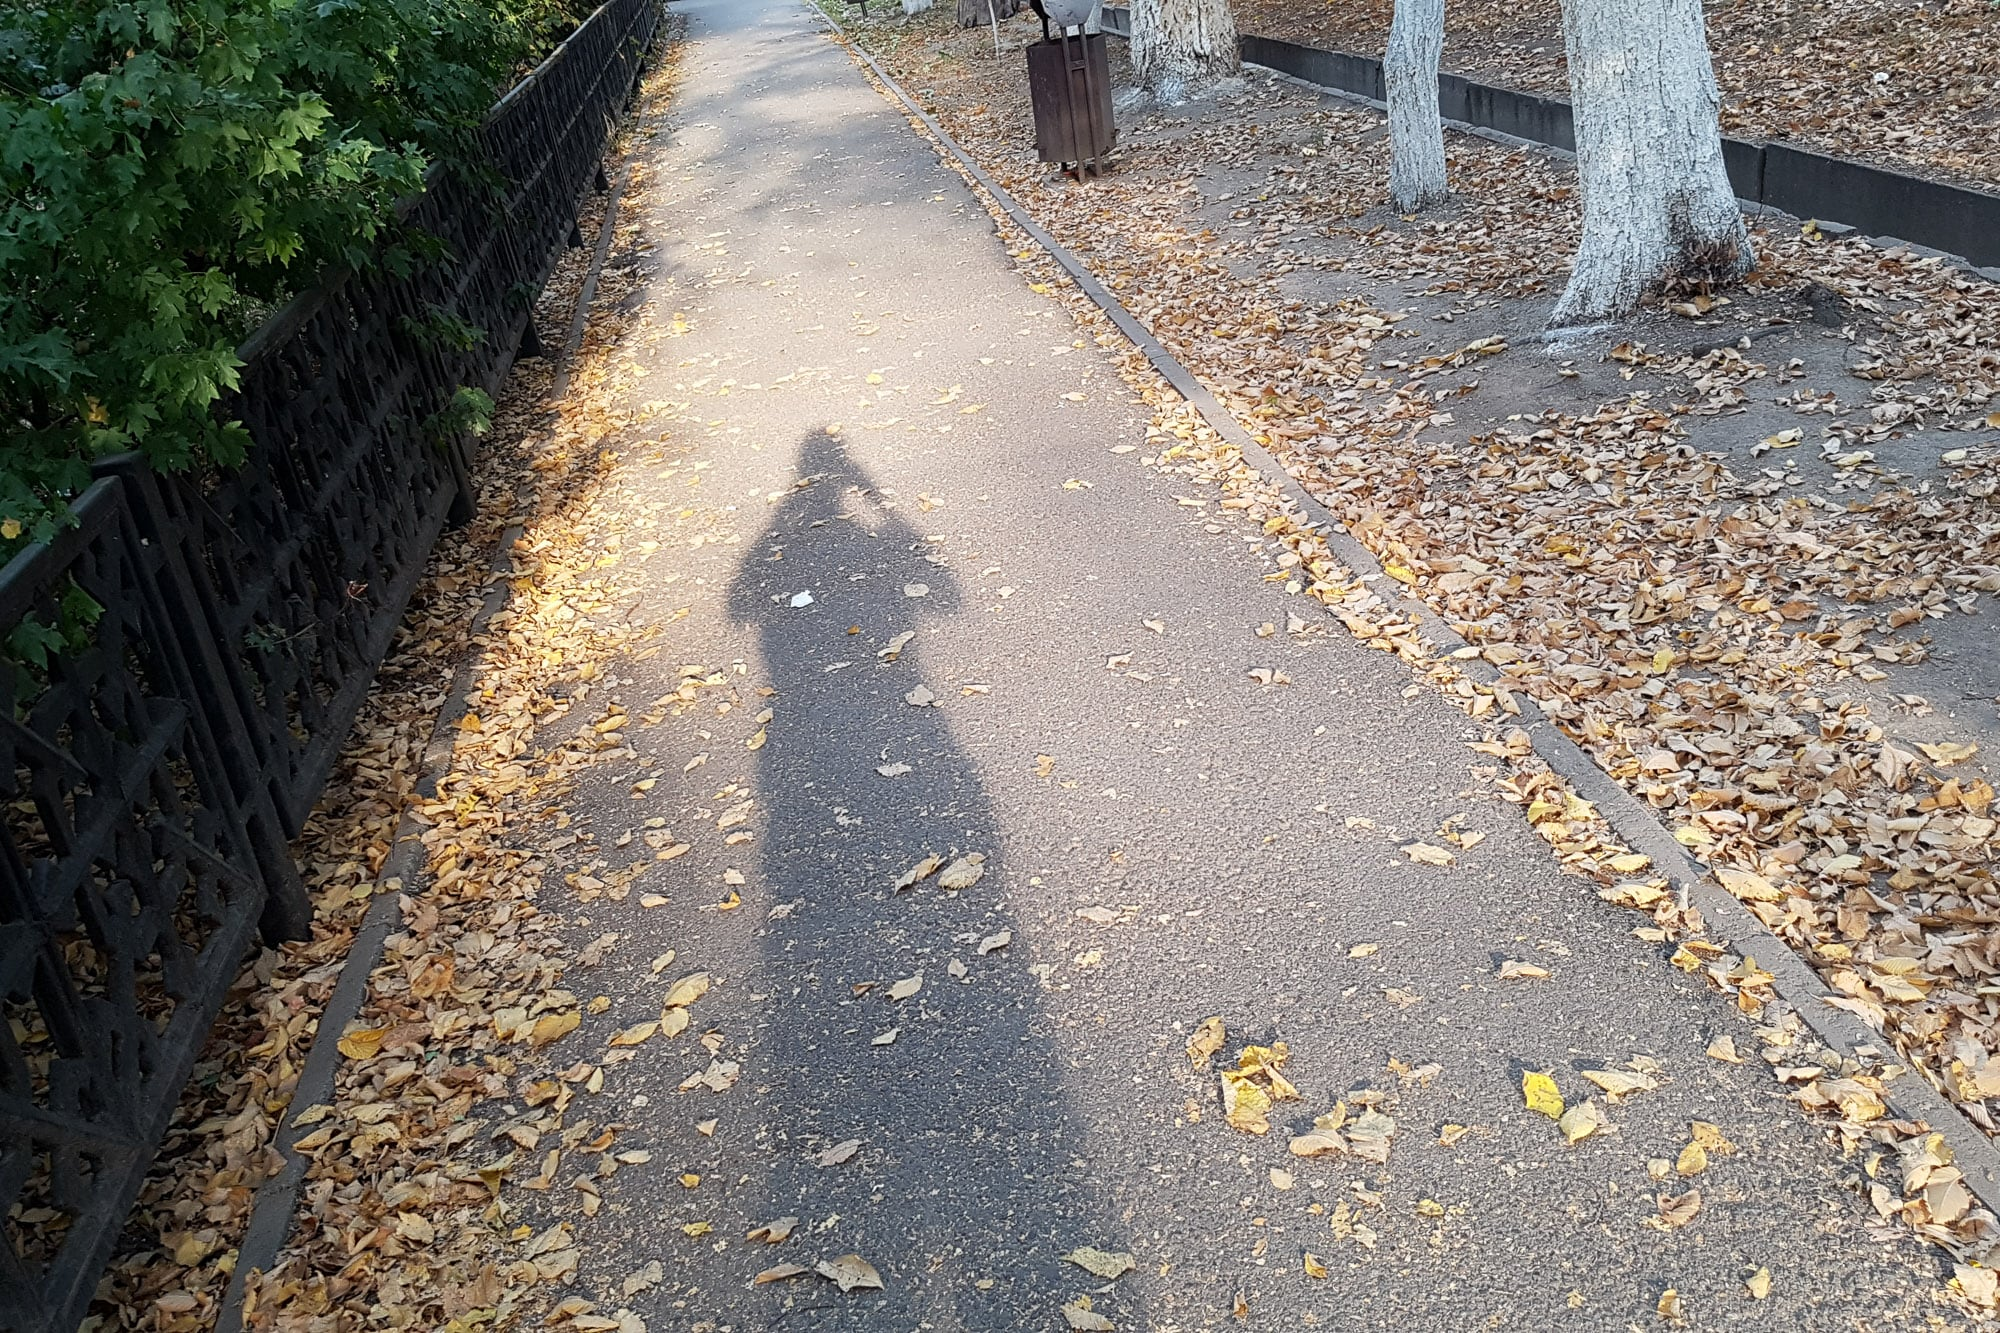 shadow and leaves